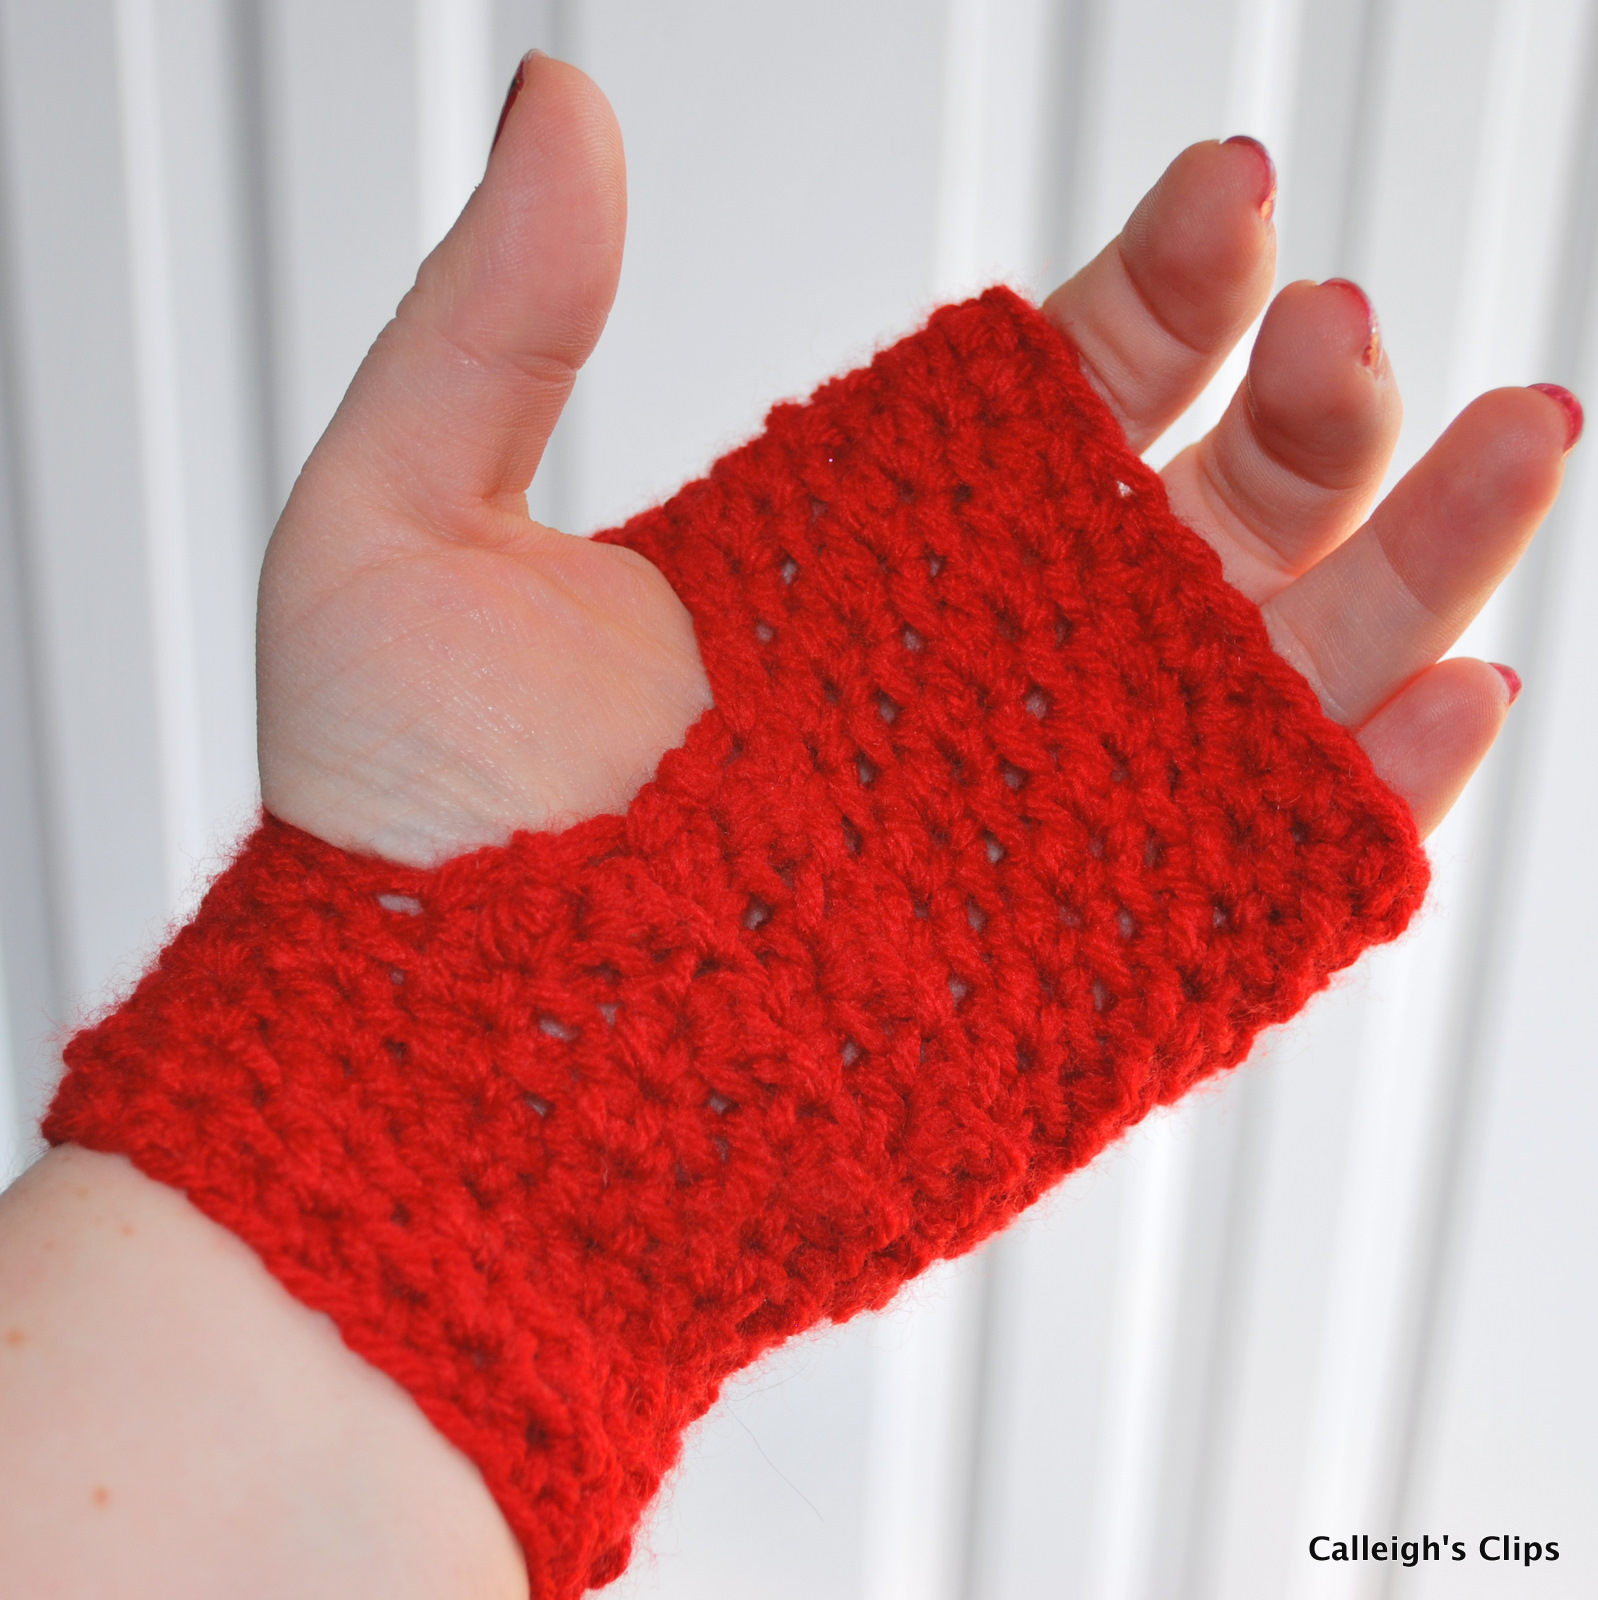 Crocheting Using Your Hands : ... Crochet Creations: Textured Fingerless Gloves : Free Crochet Pattern